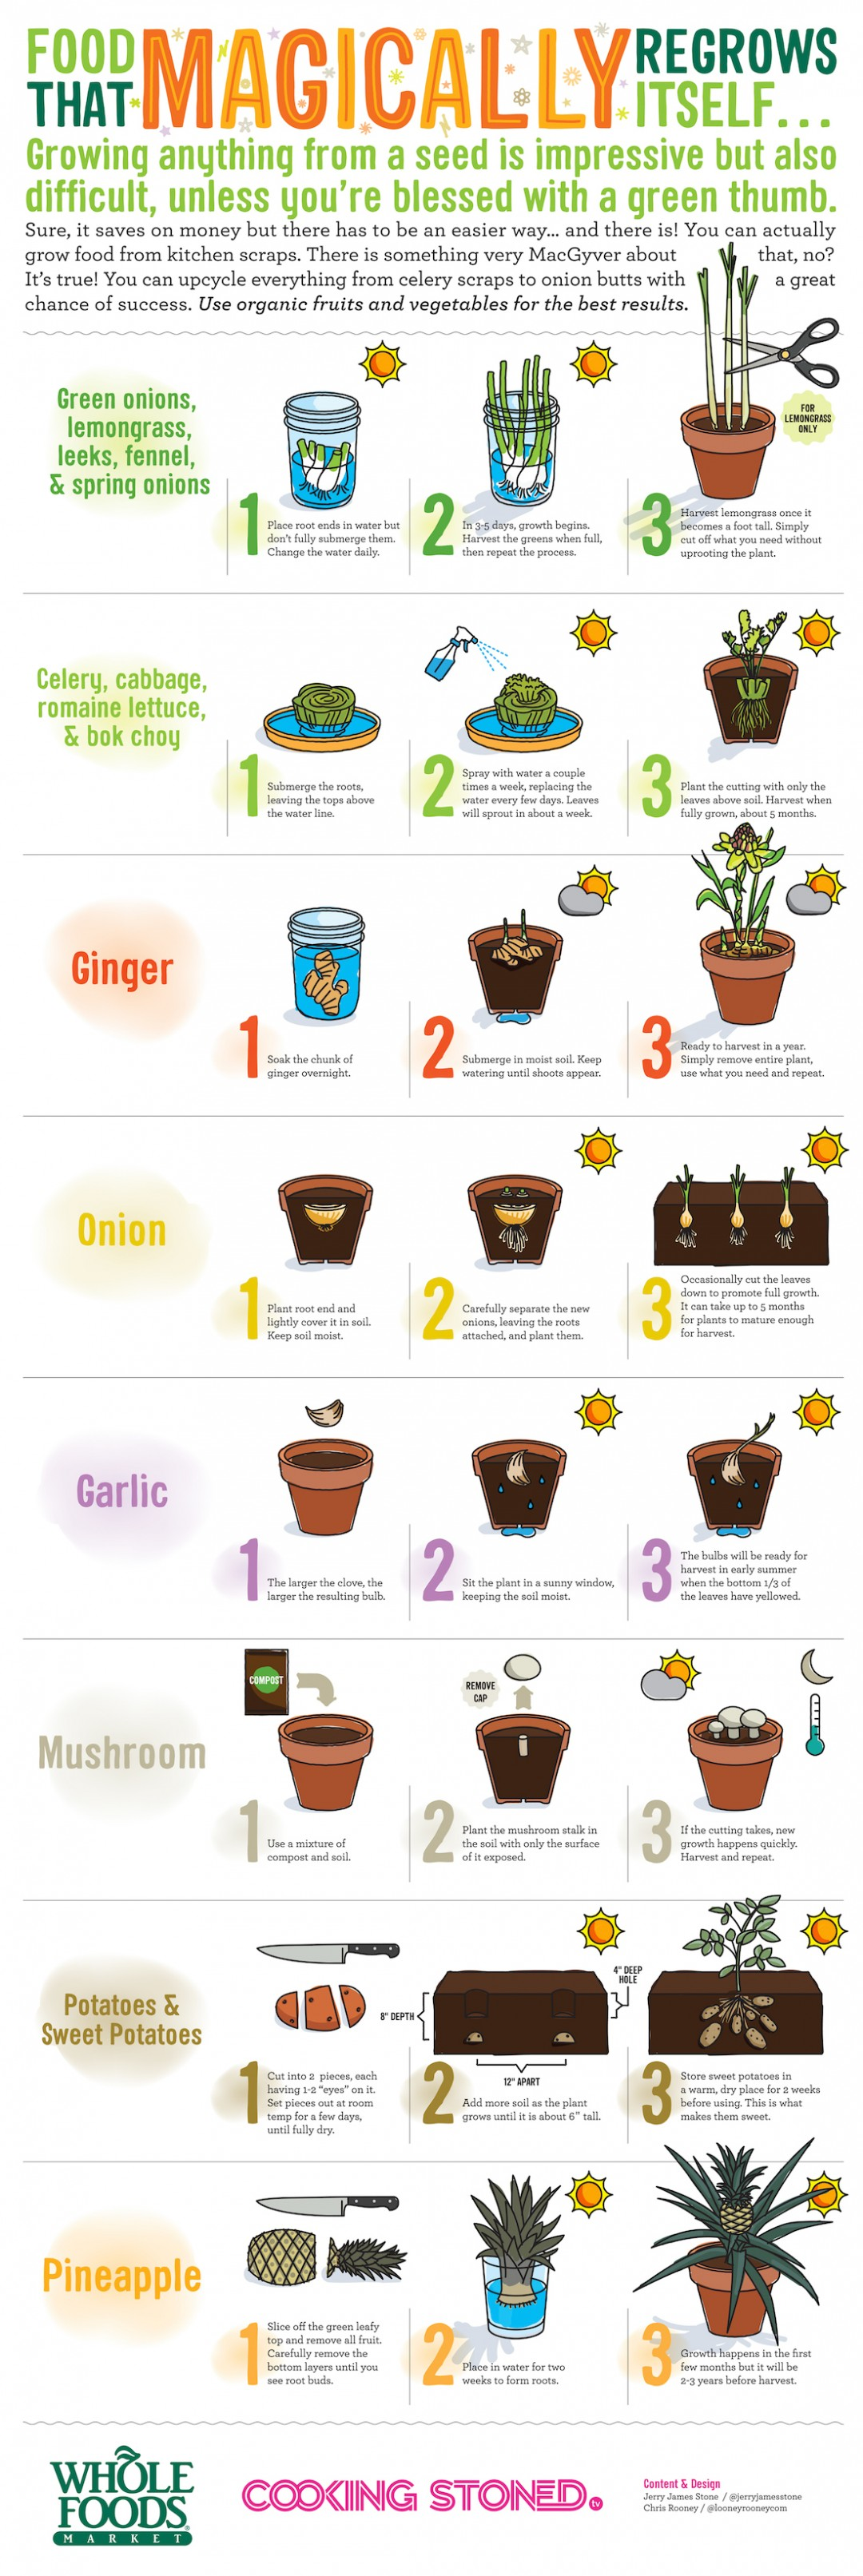 Waste Not – Want Not: Regrowing Food from Kitchen Scraps